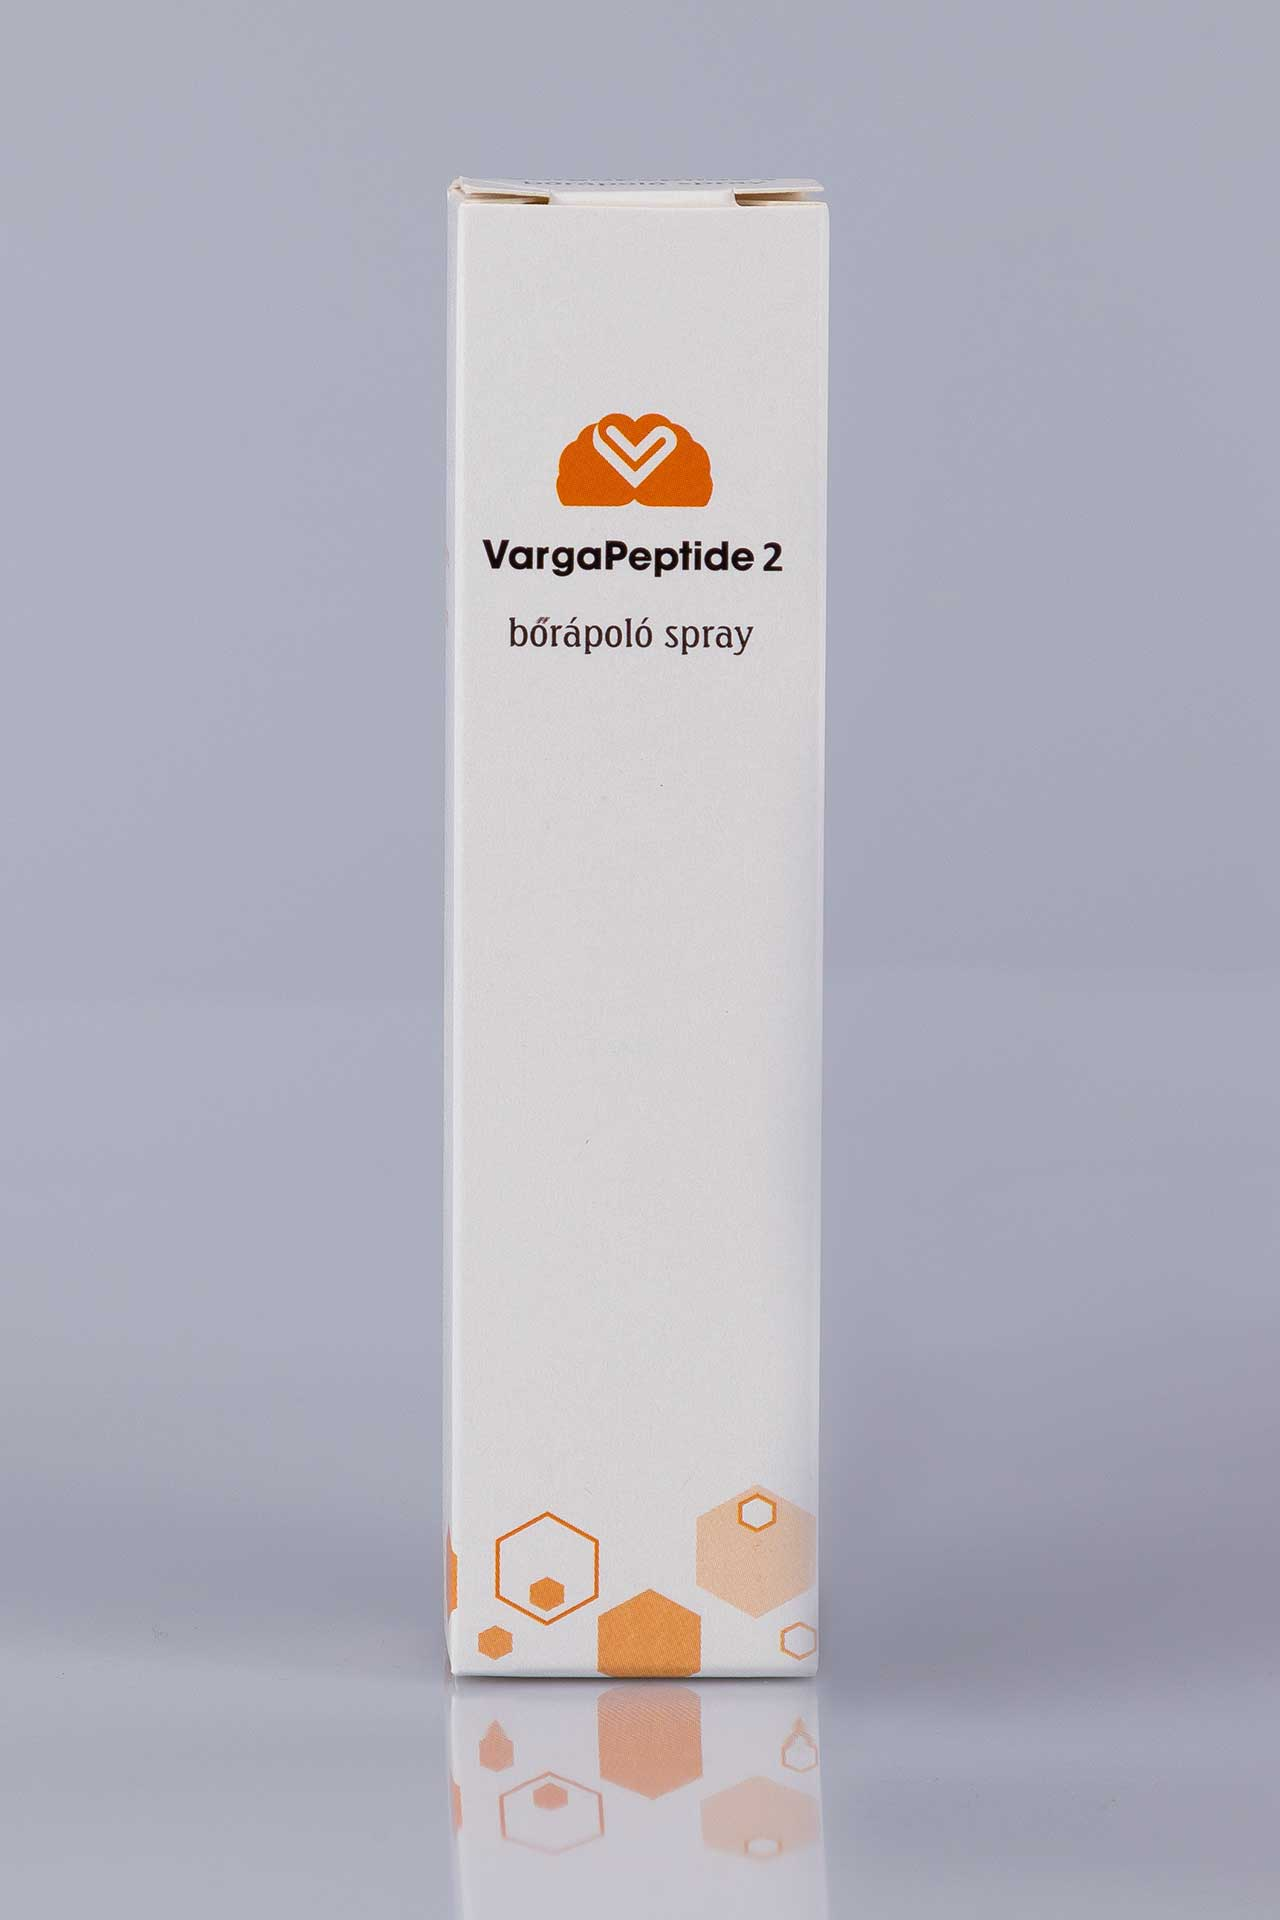 VargaPeptide skin care spray 2